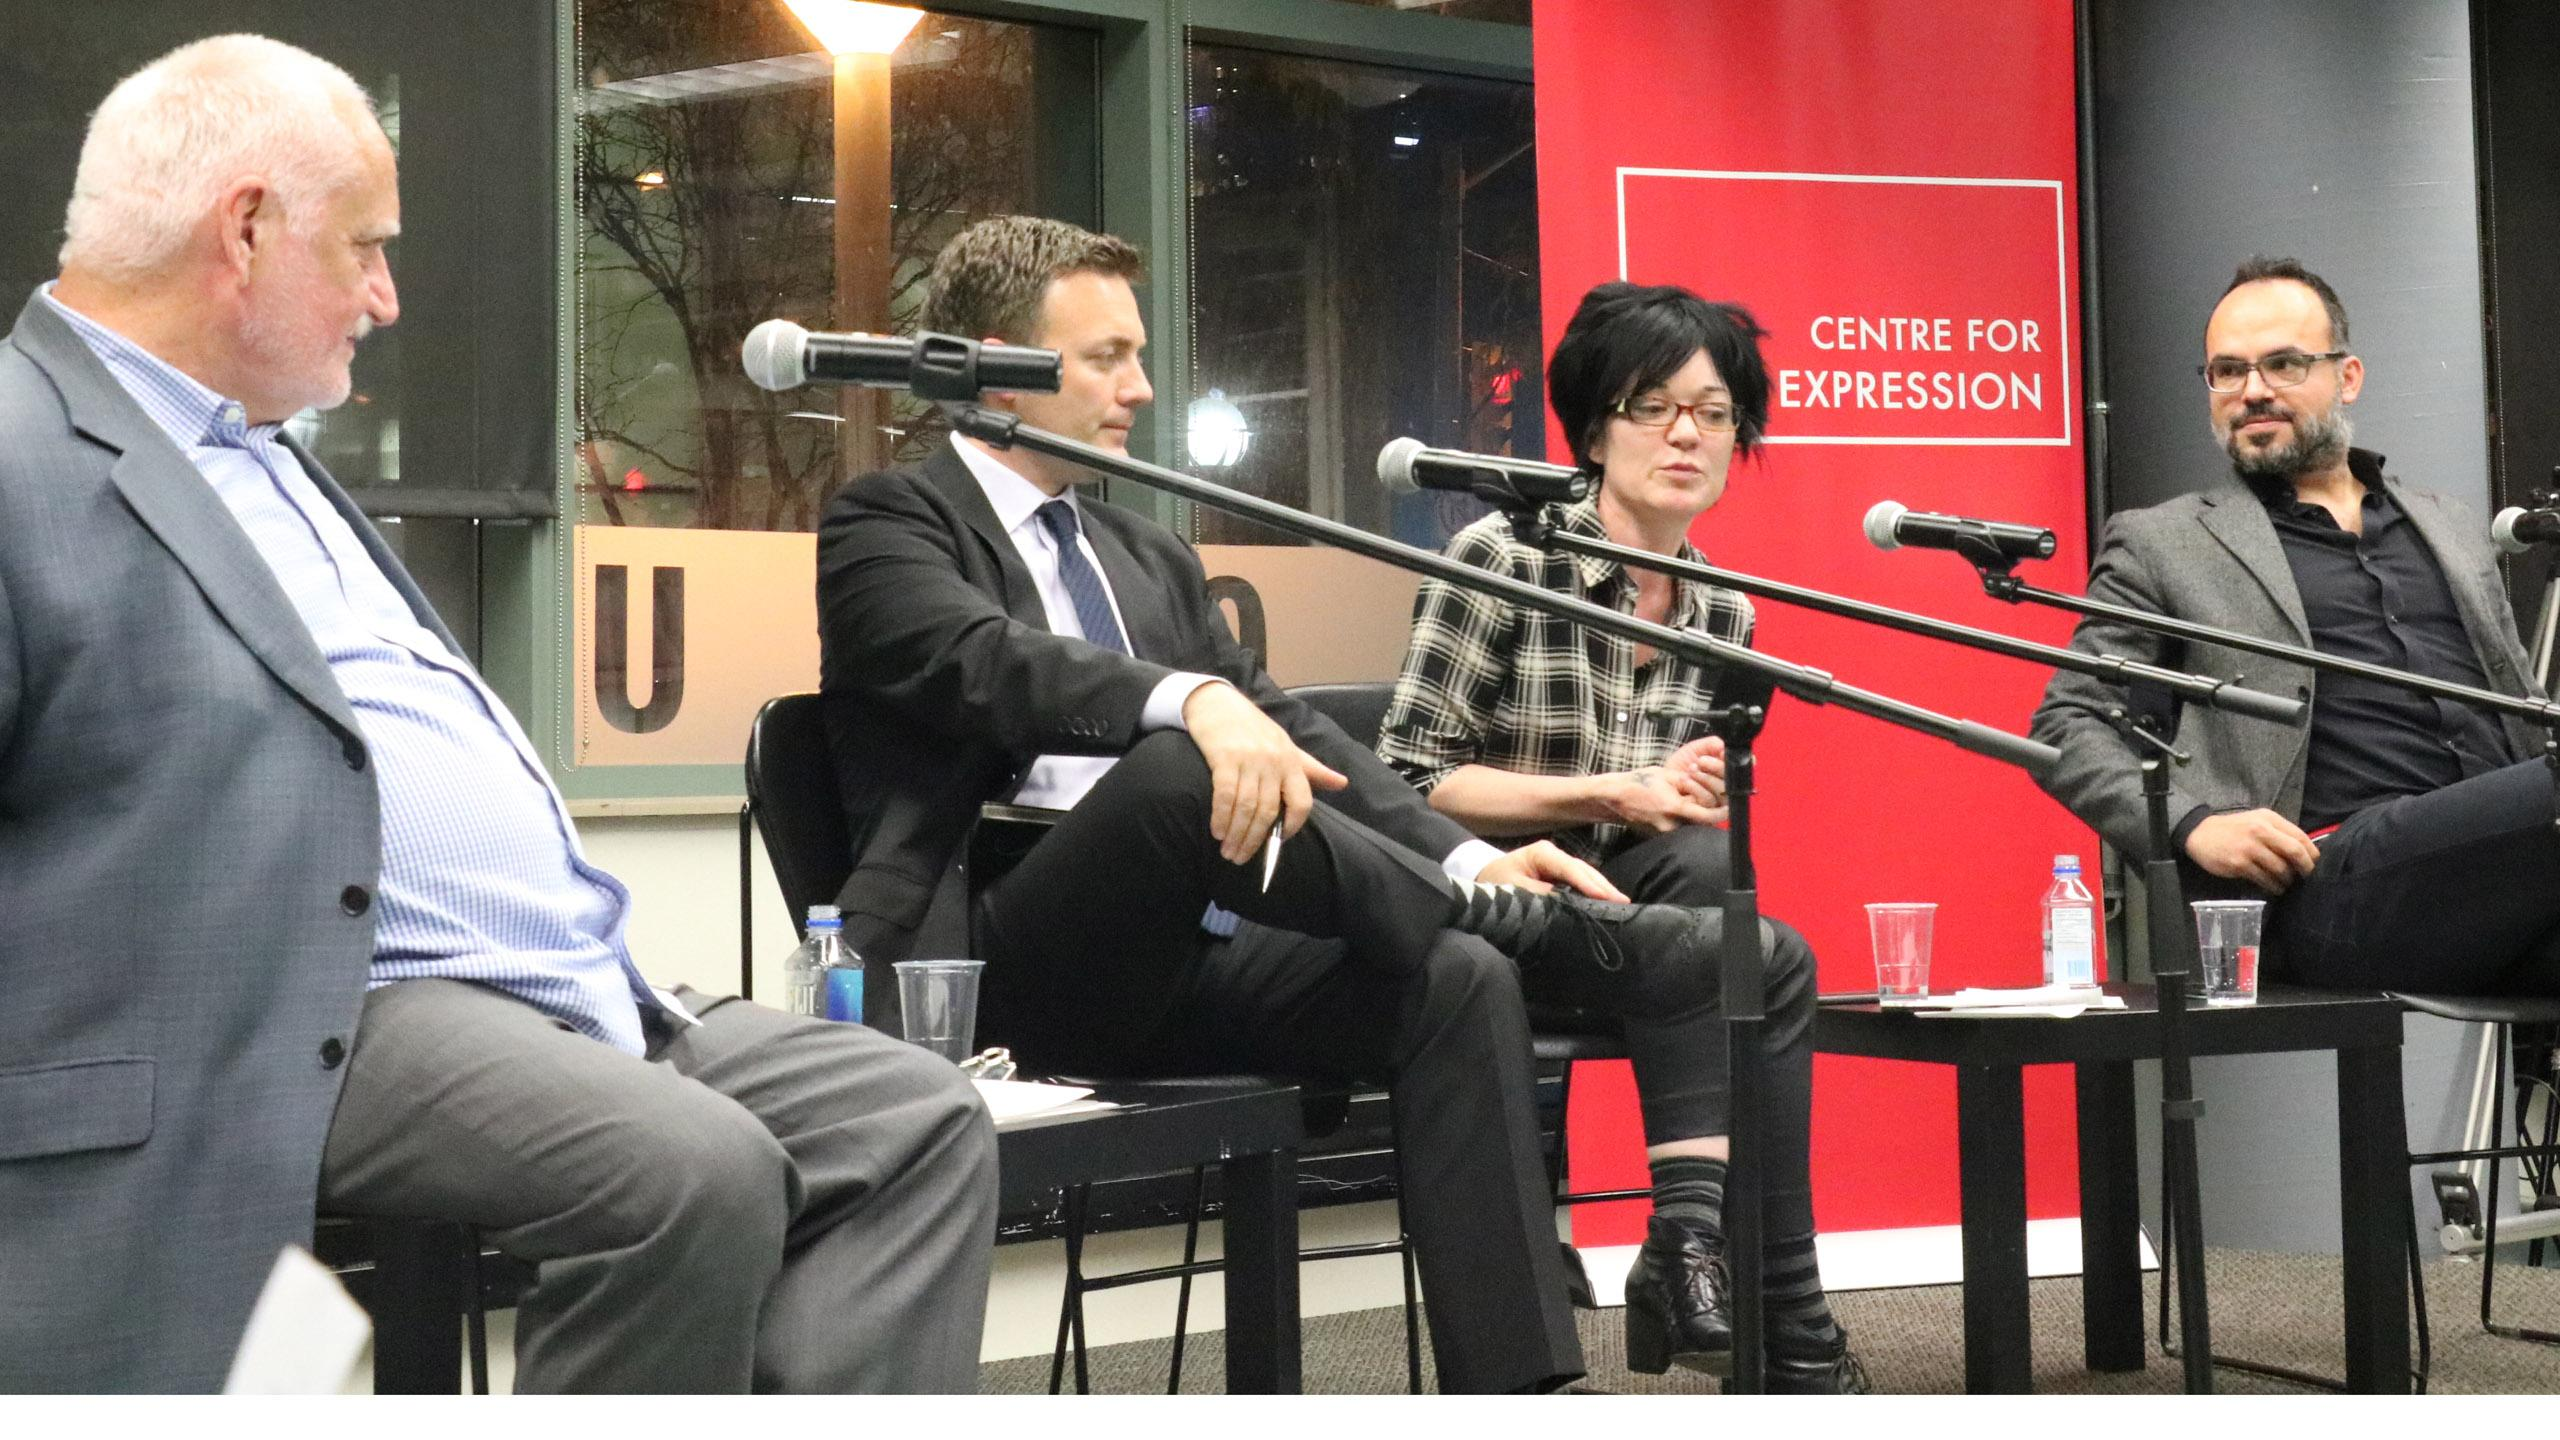 The panel sits in front of a window and speaks into microphones.